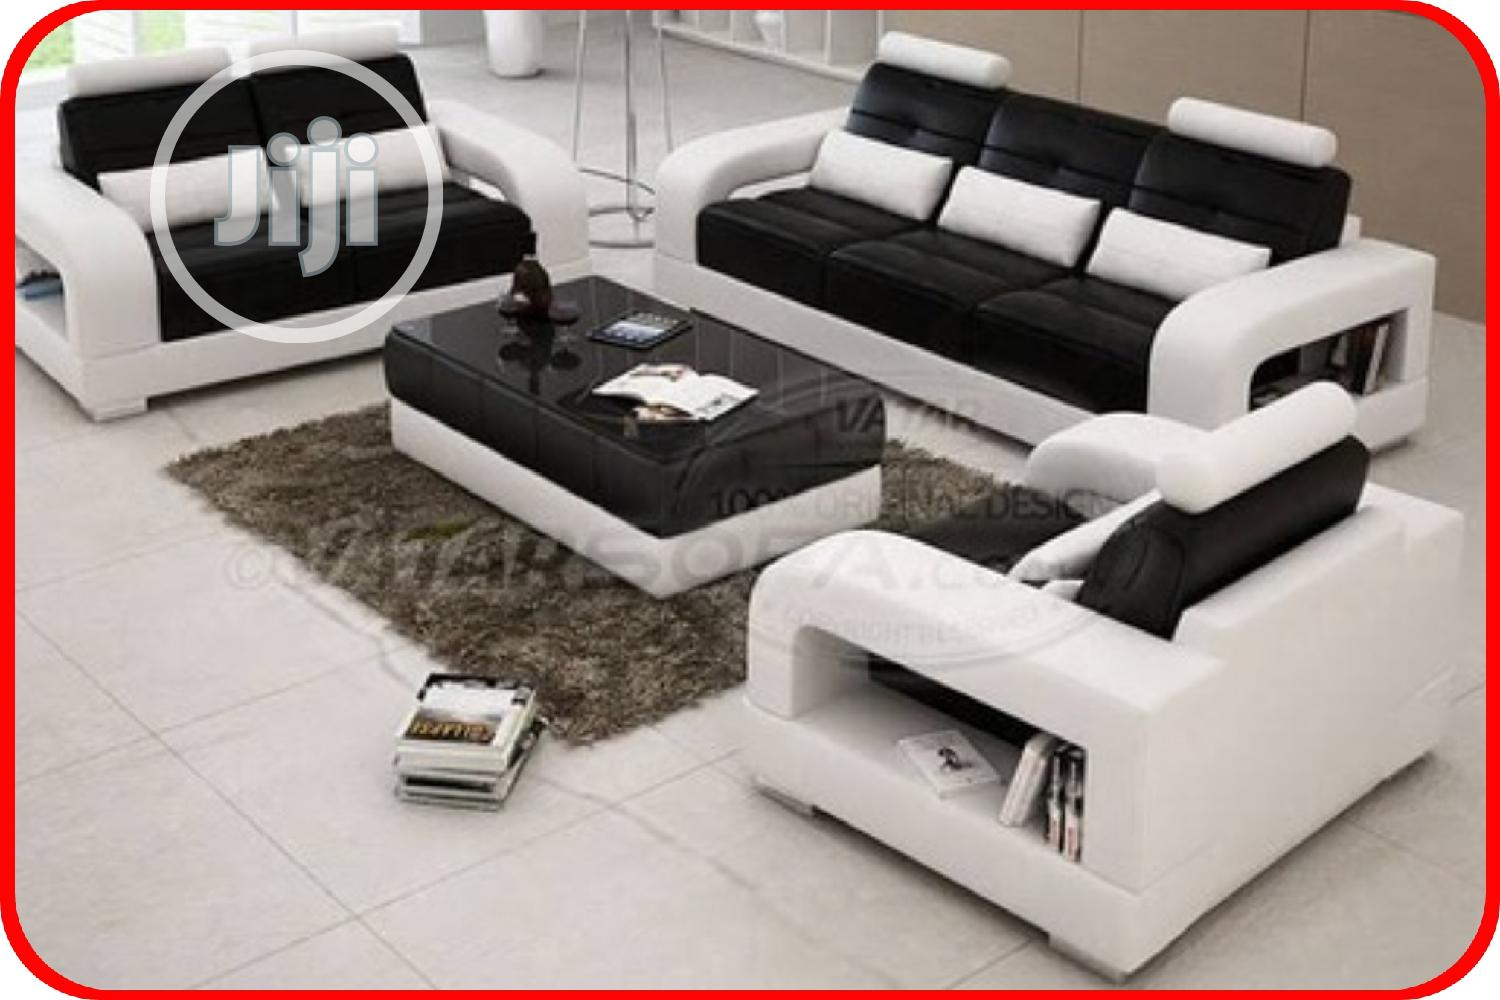 Complete Set Of 7 Seater Sofa With Center Table - White and Black